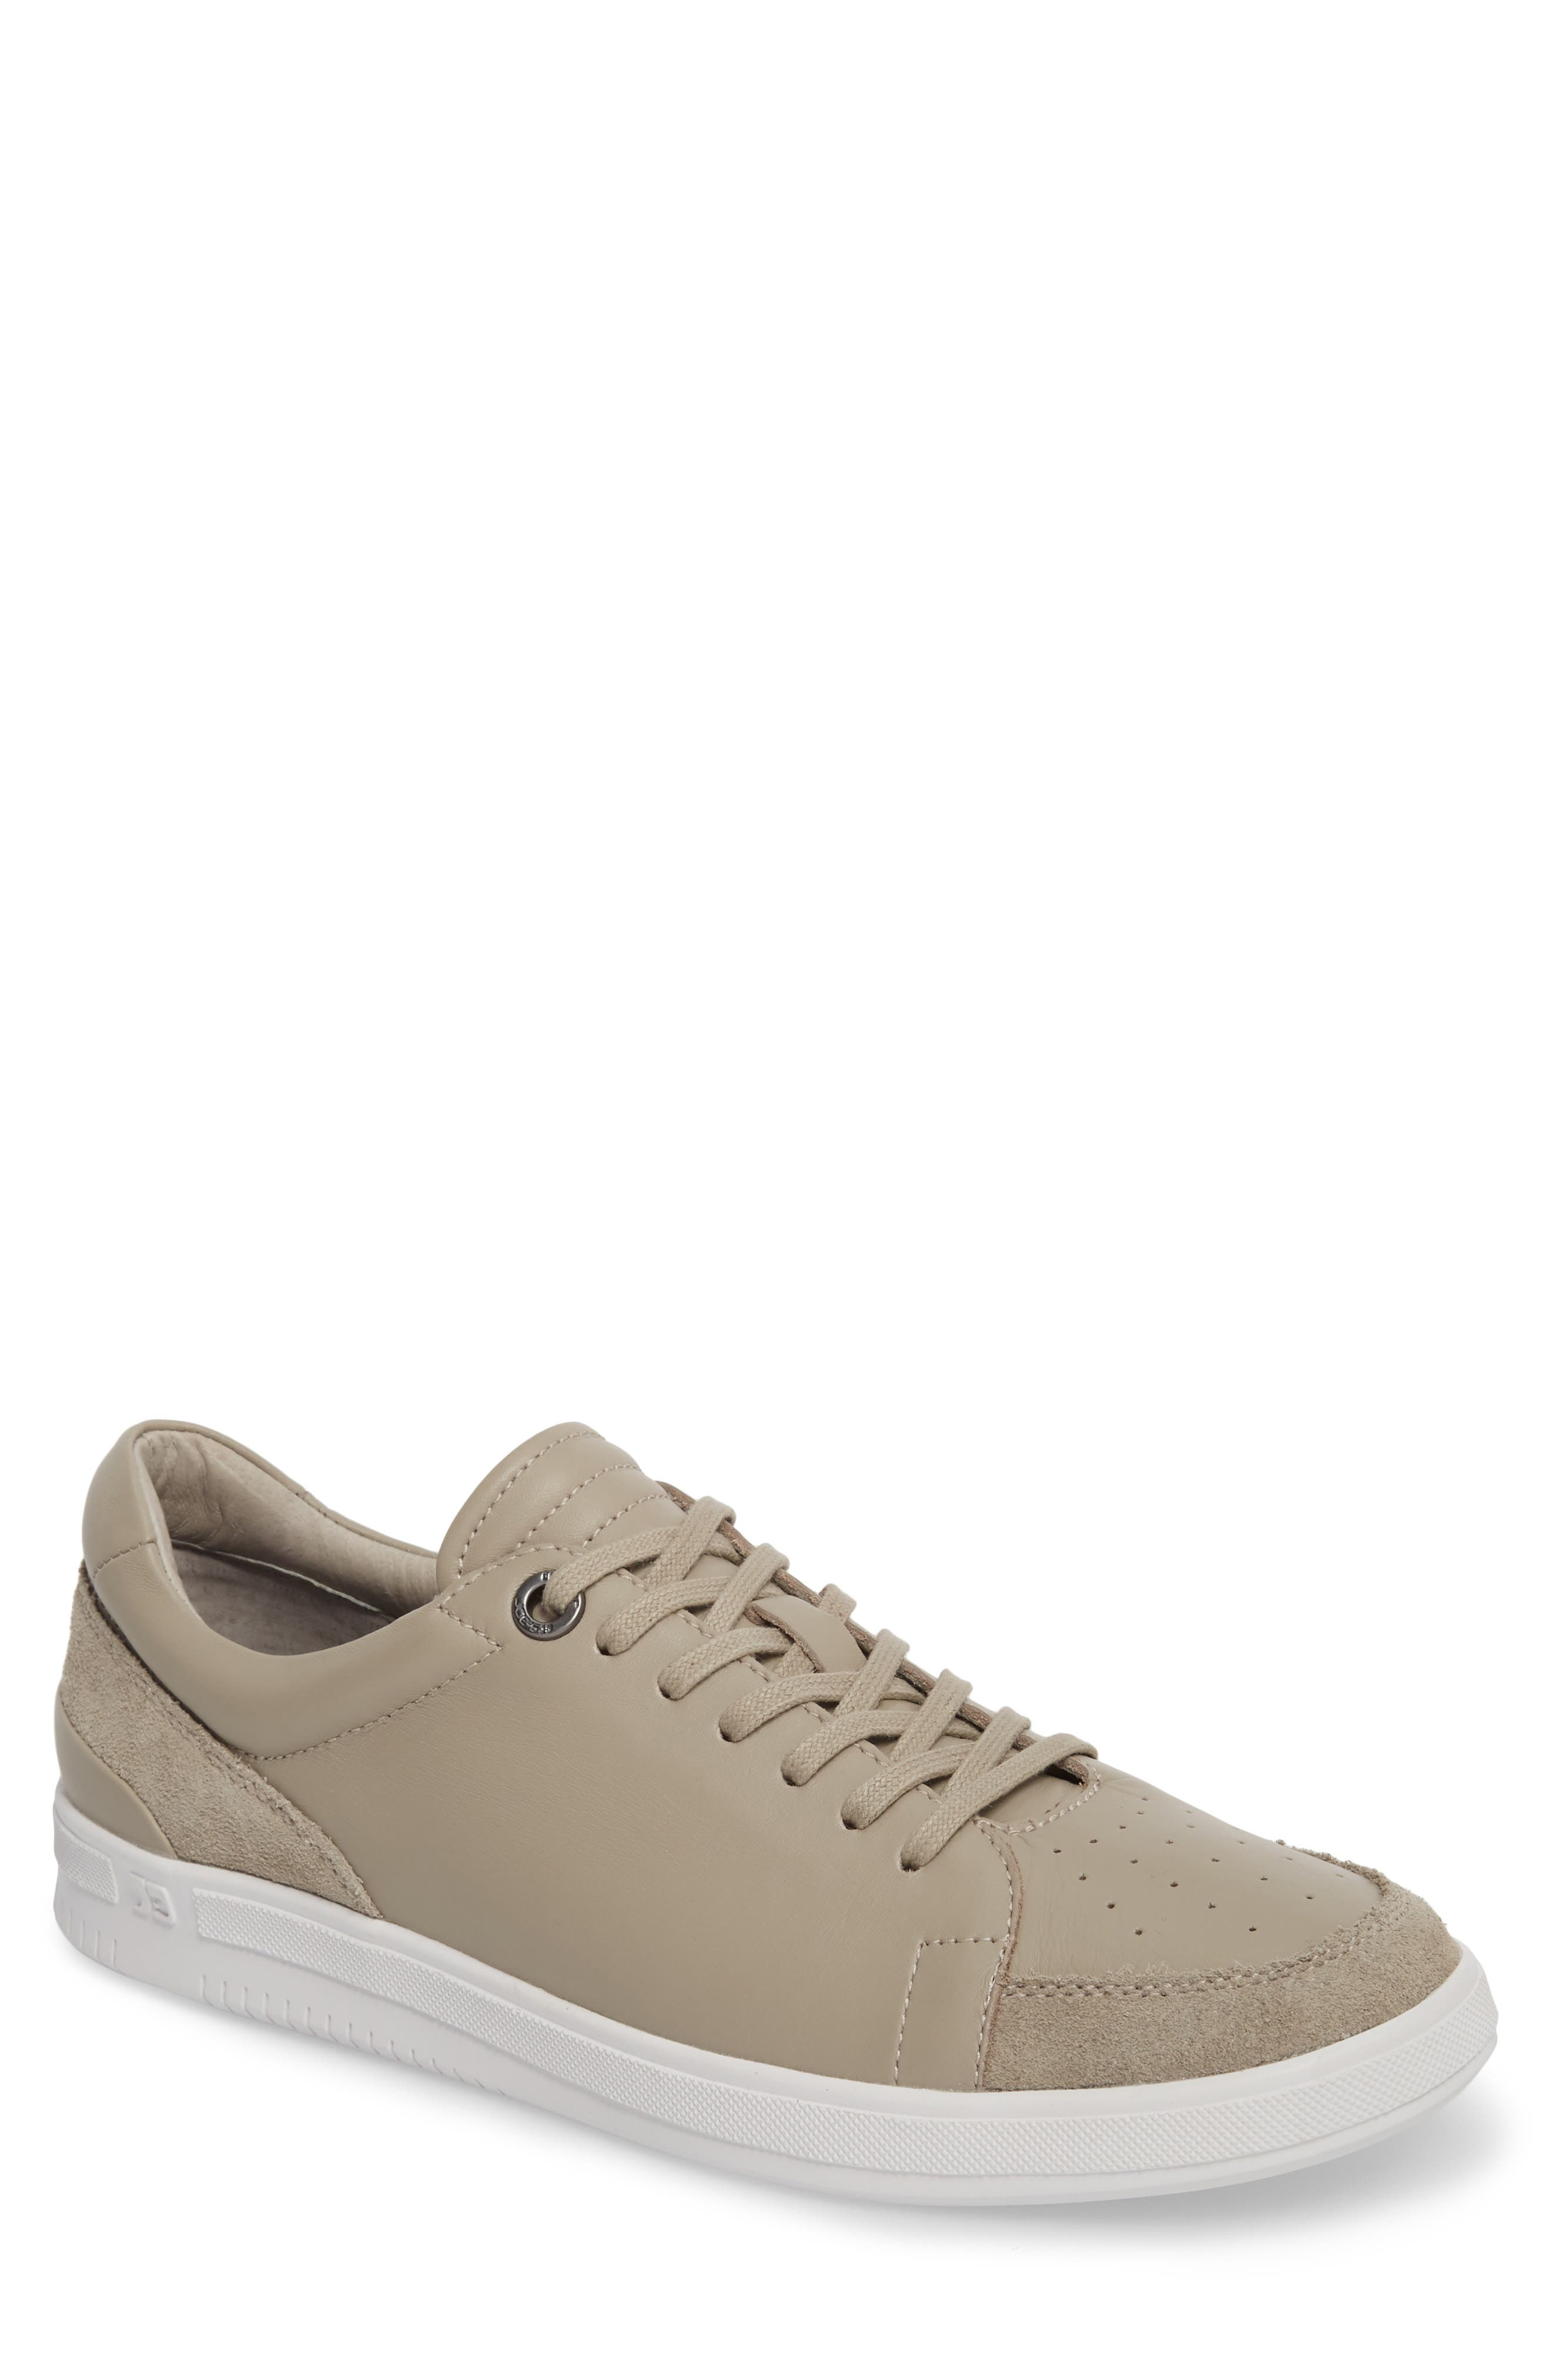 Joe Classic Low Top Sneaker,                             Main thumbnail 1, color,                             STONE LEATHER